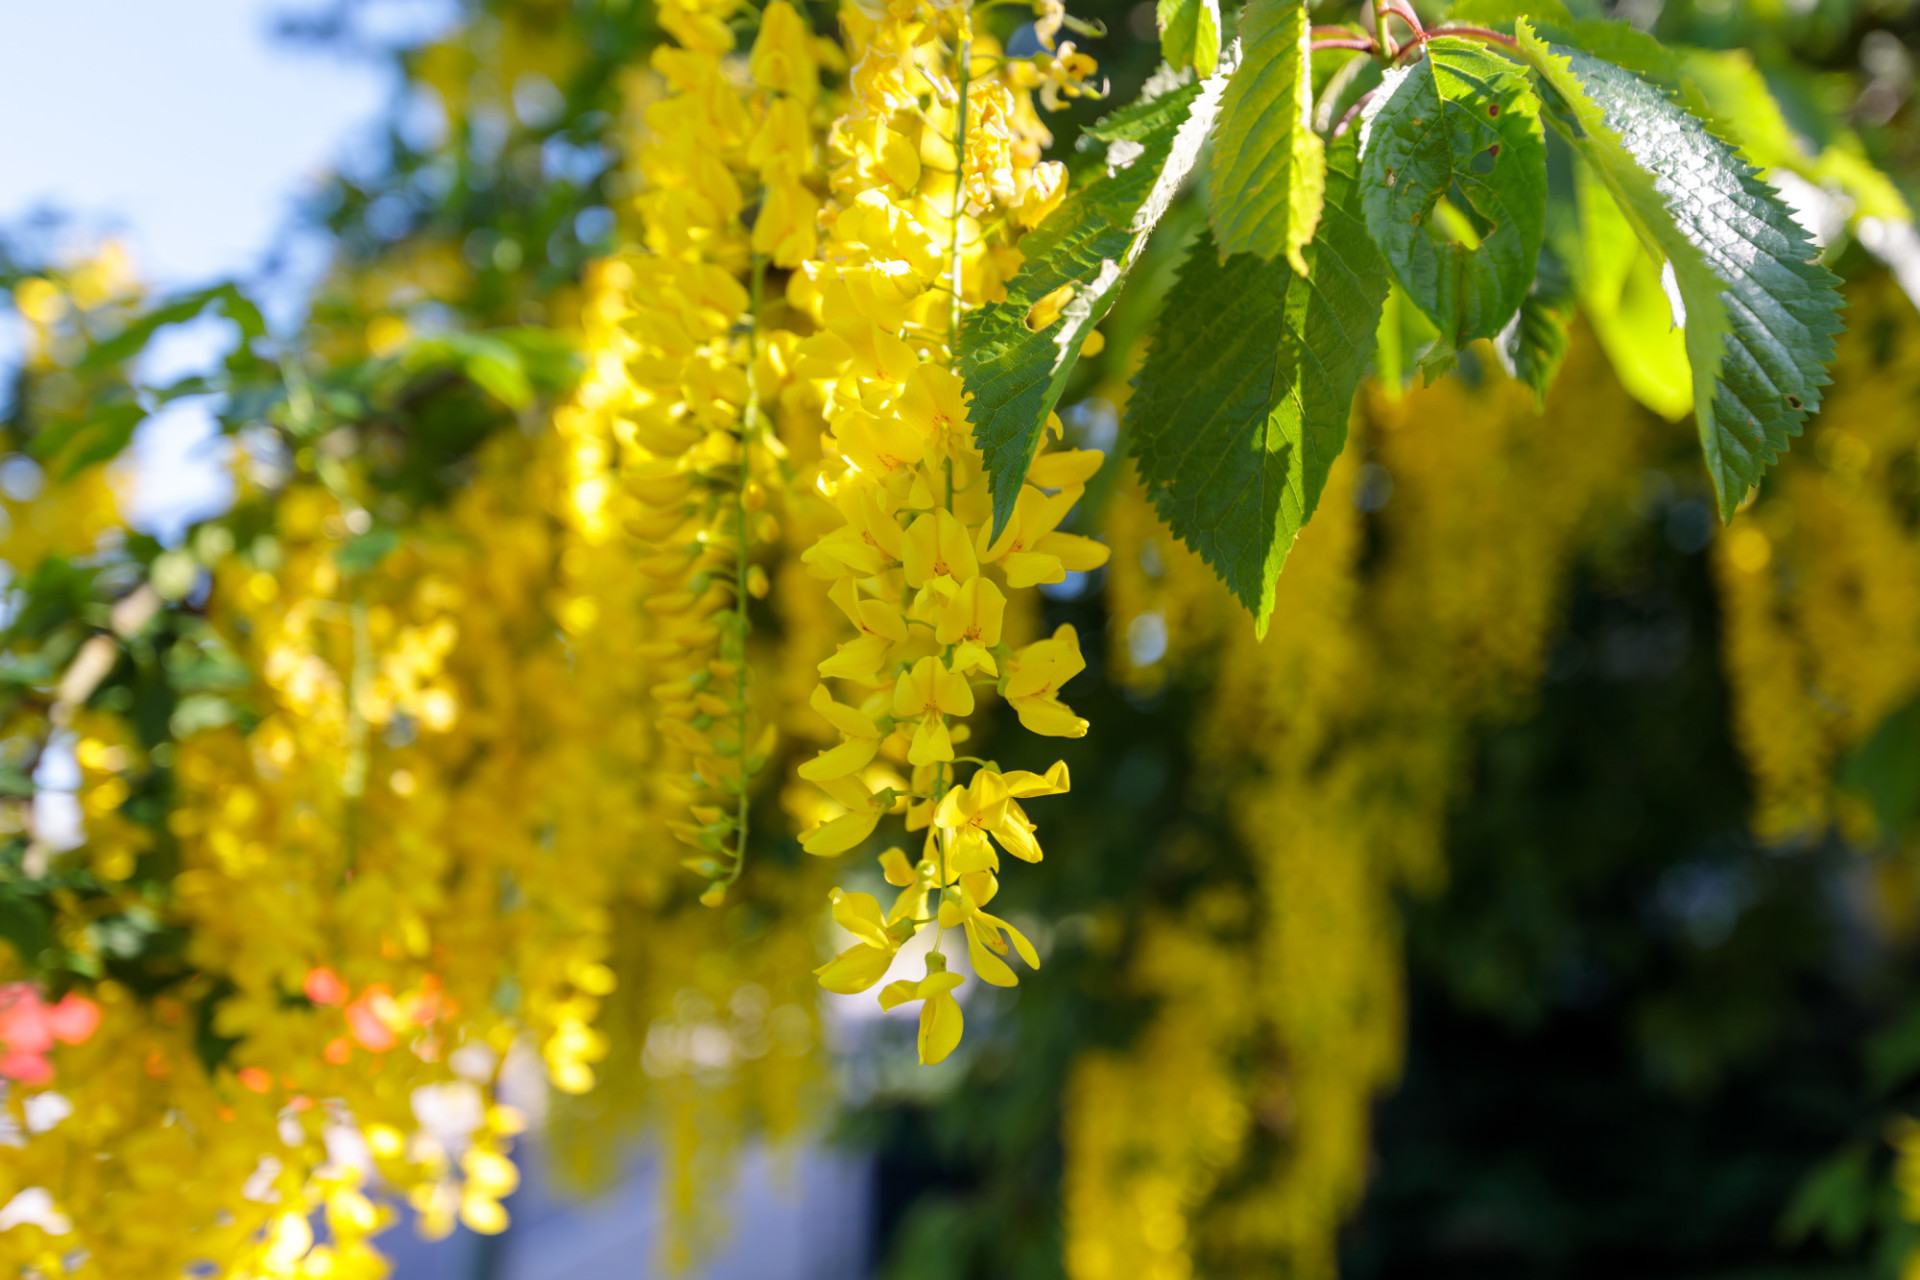 Blooming Laburnum anagyroides, also known as golden chain tree